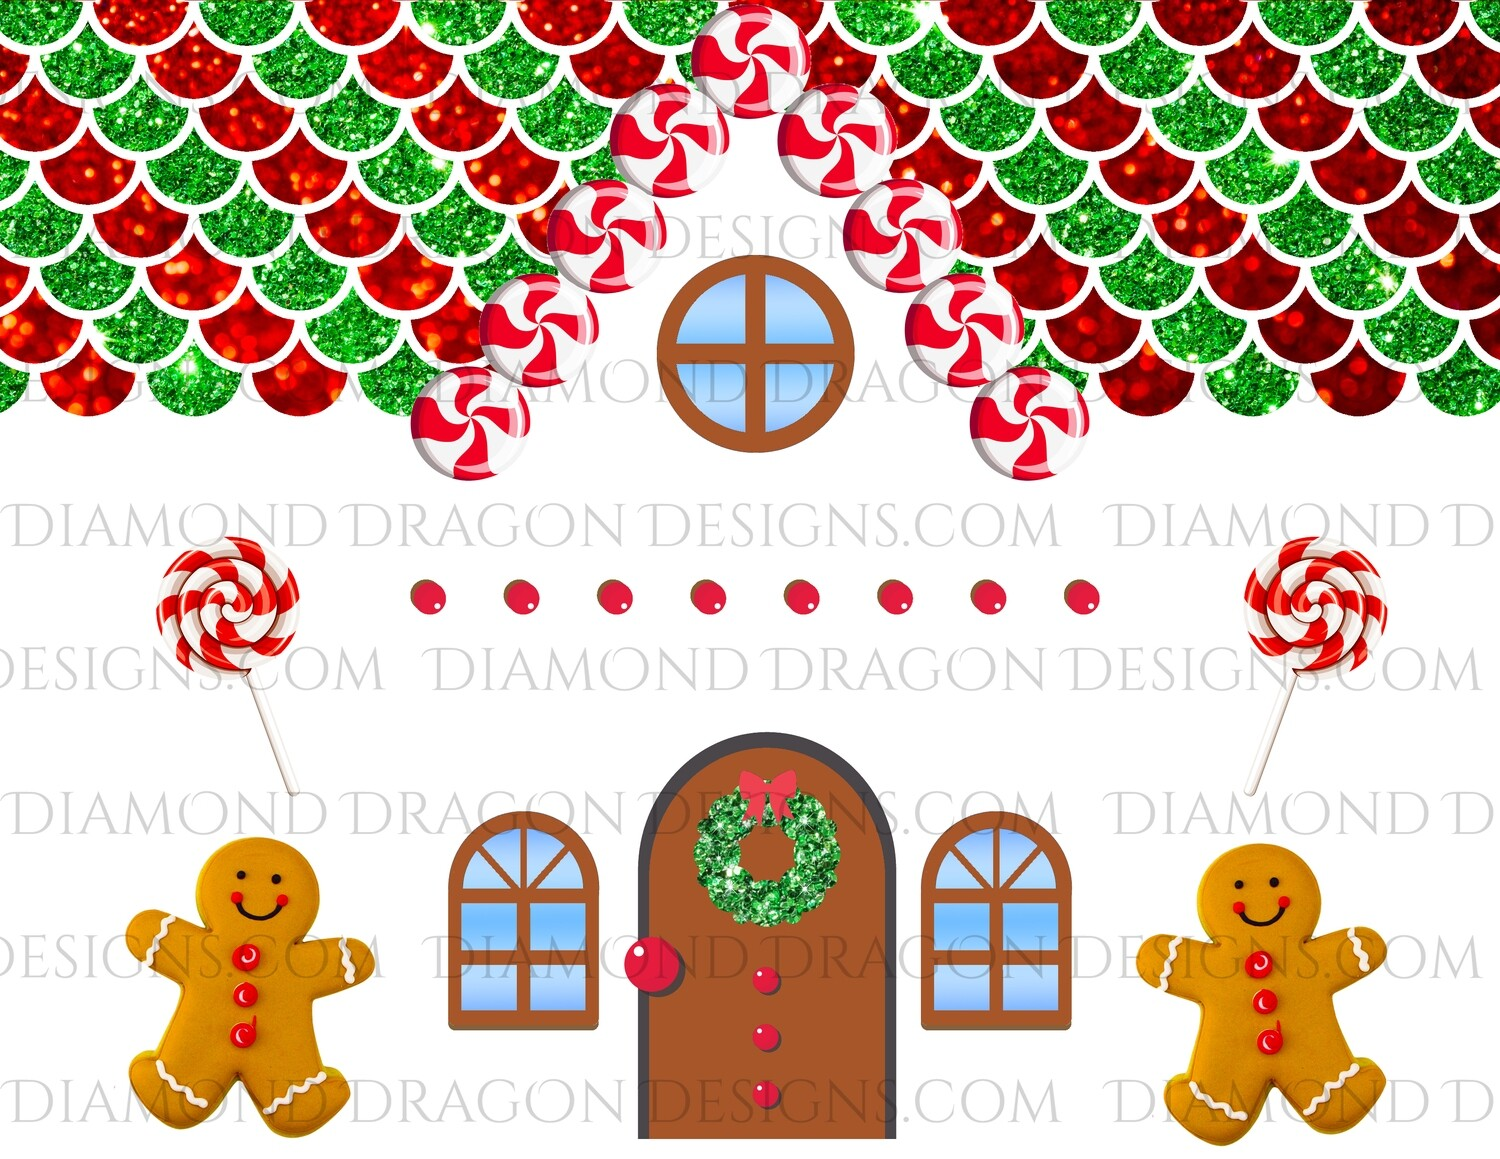 Christmas - Full Page Gingerbread House, Make Your Own Gingerbread Tumbler, Waterslides